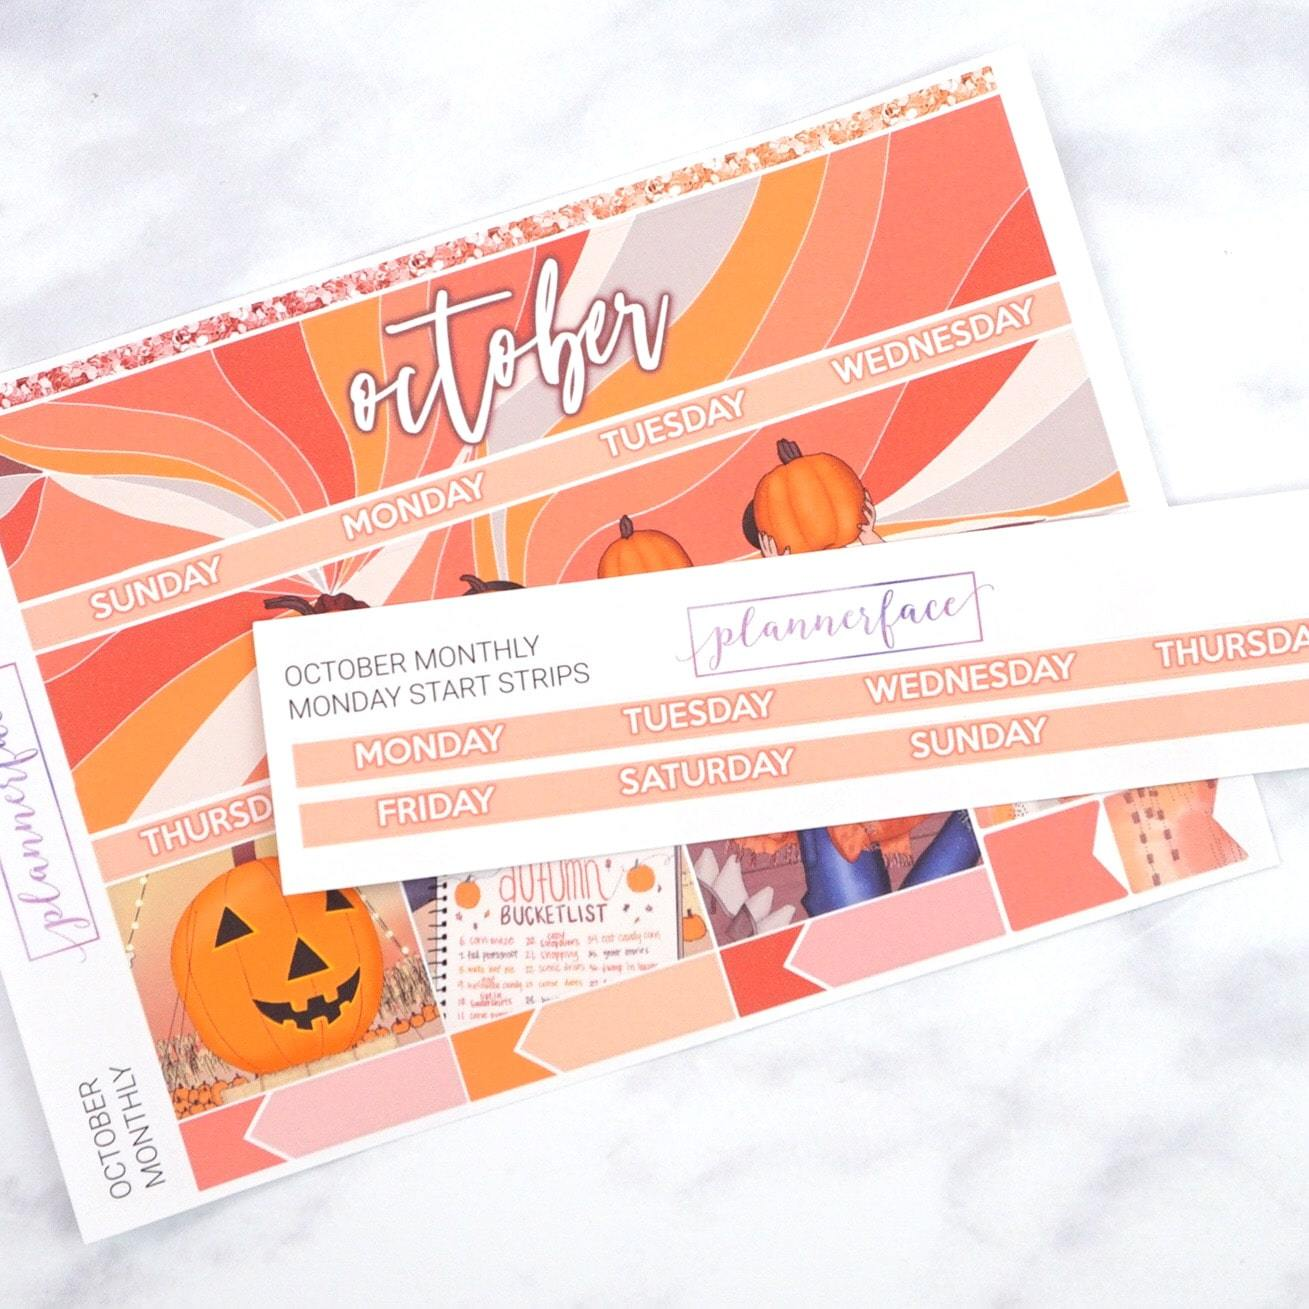 Plannerface Monday Start Add-on Strip | October Planner Stickers